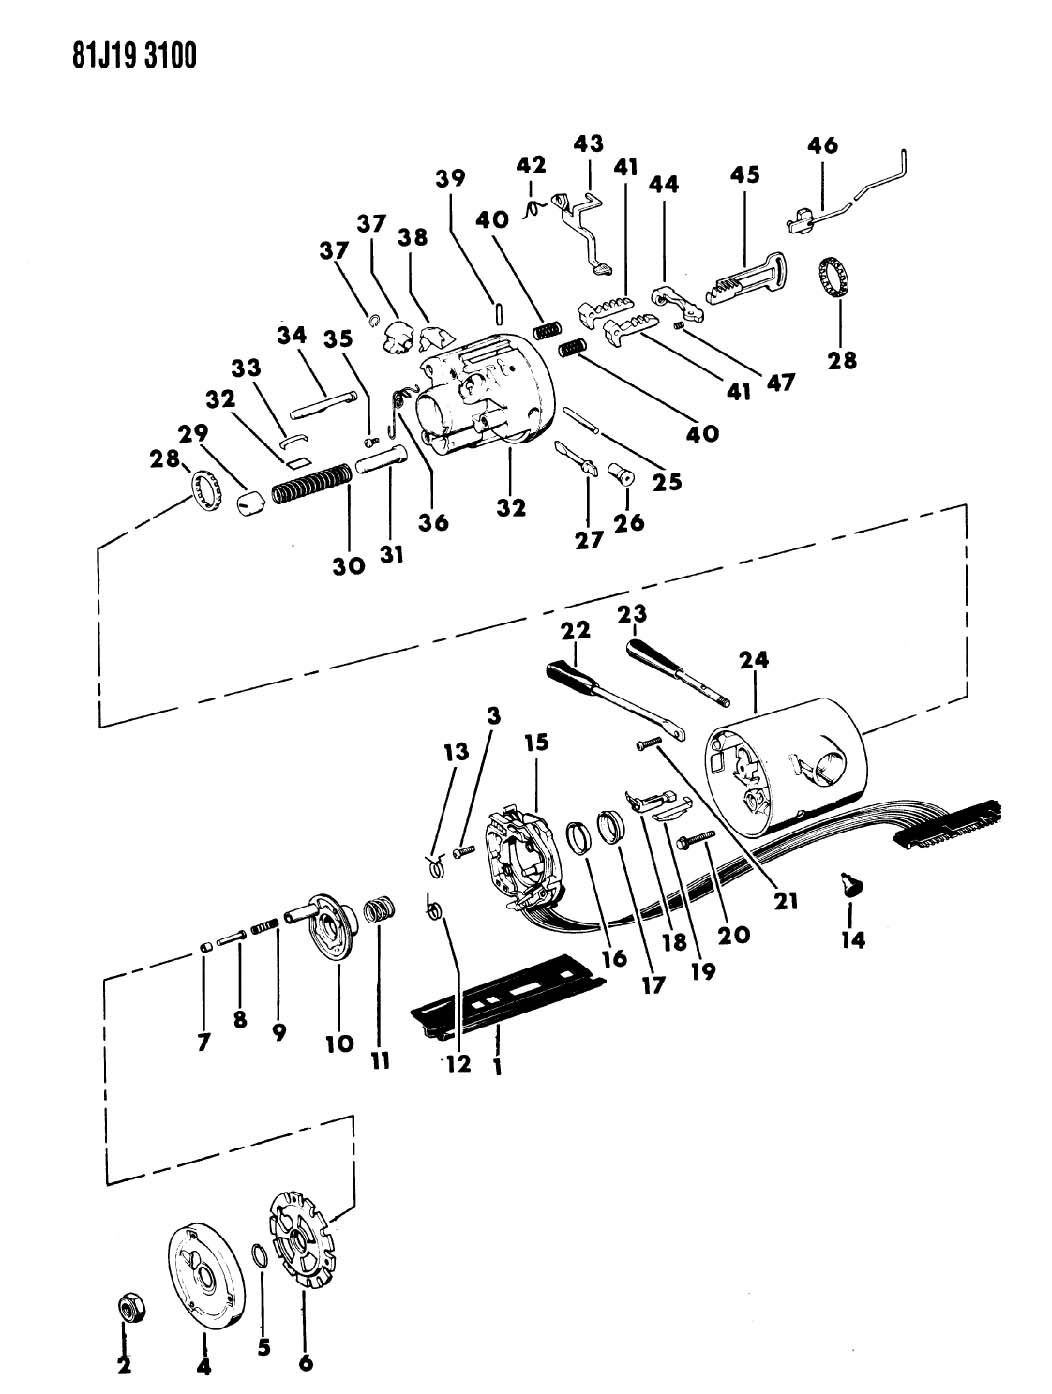 00000484?resize=665%2C881 2004 chevy colorado stereo wiring diagram wiring diagram,2004 Avalanche Radio Wire Diagram